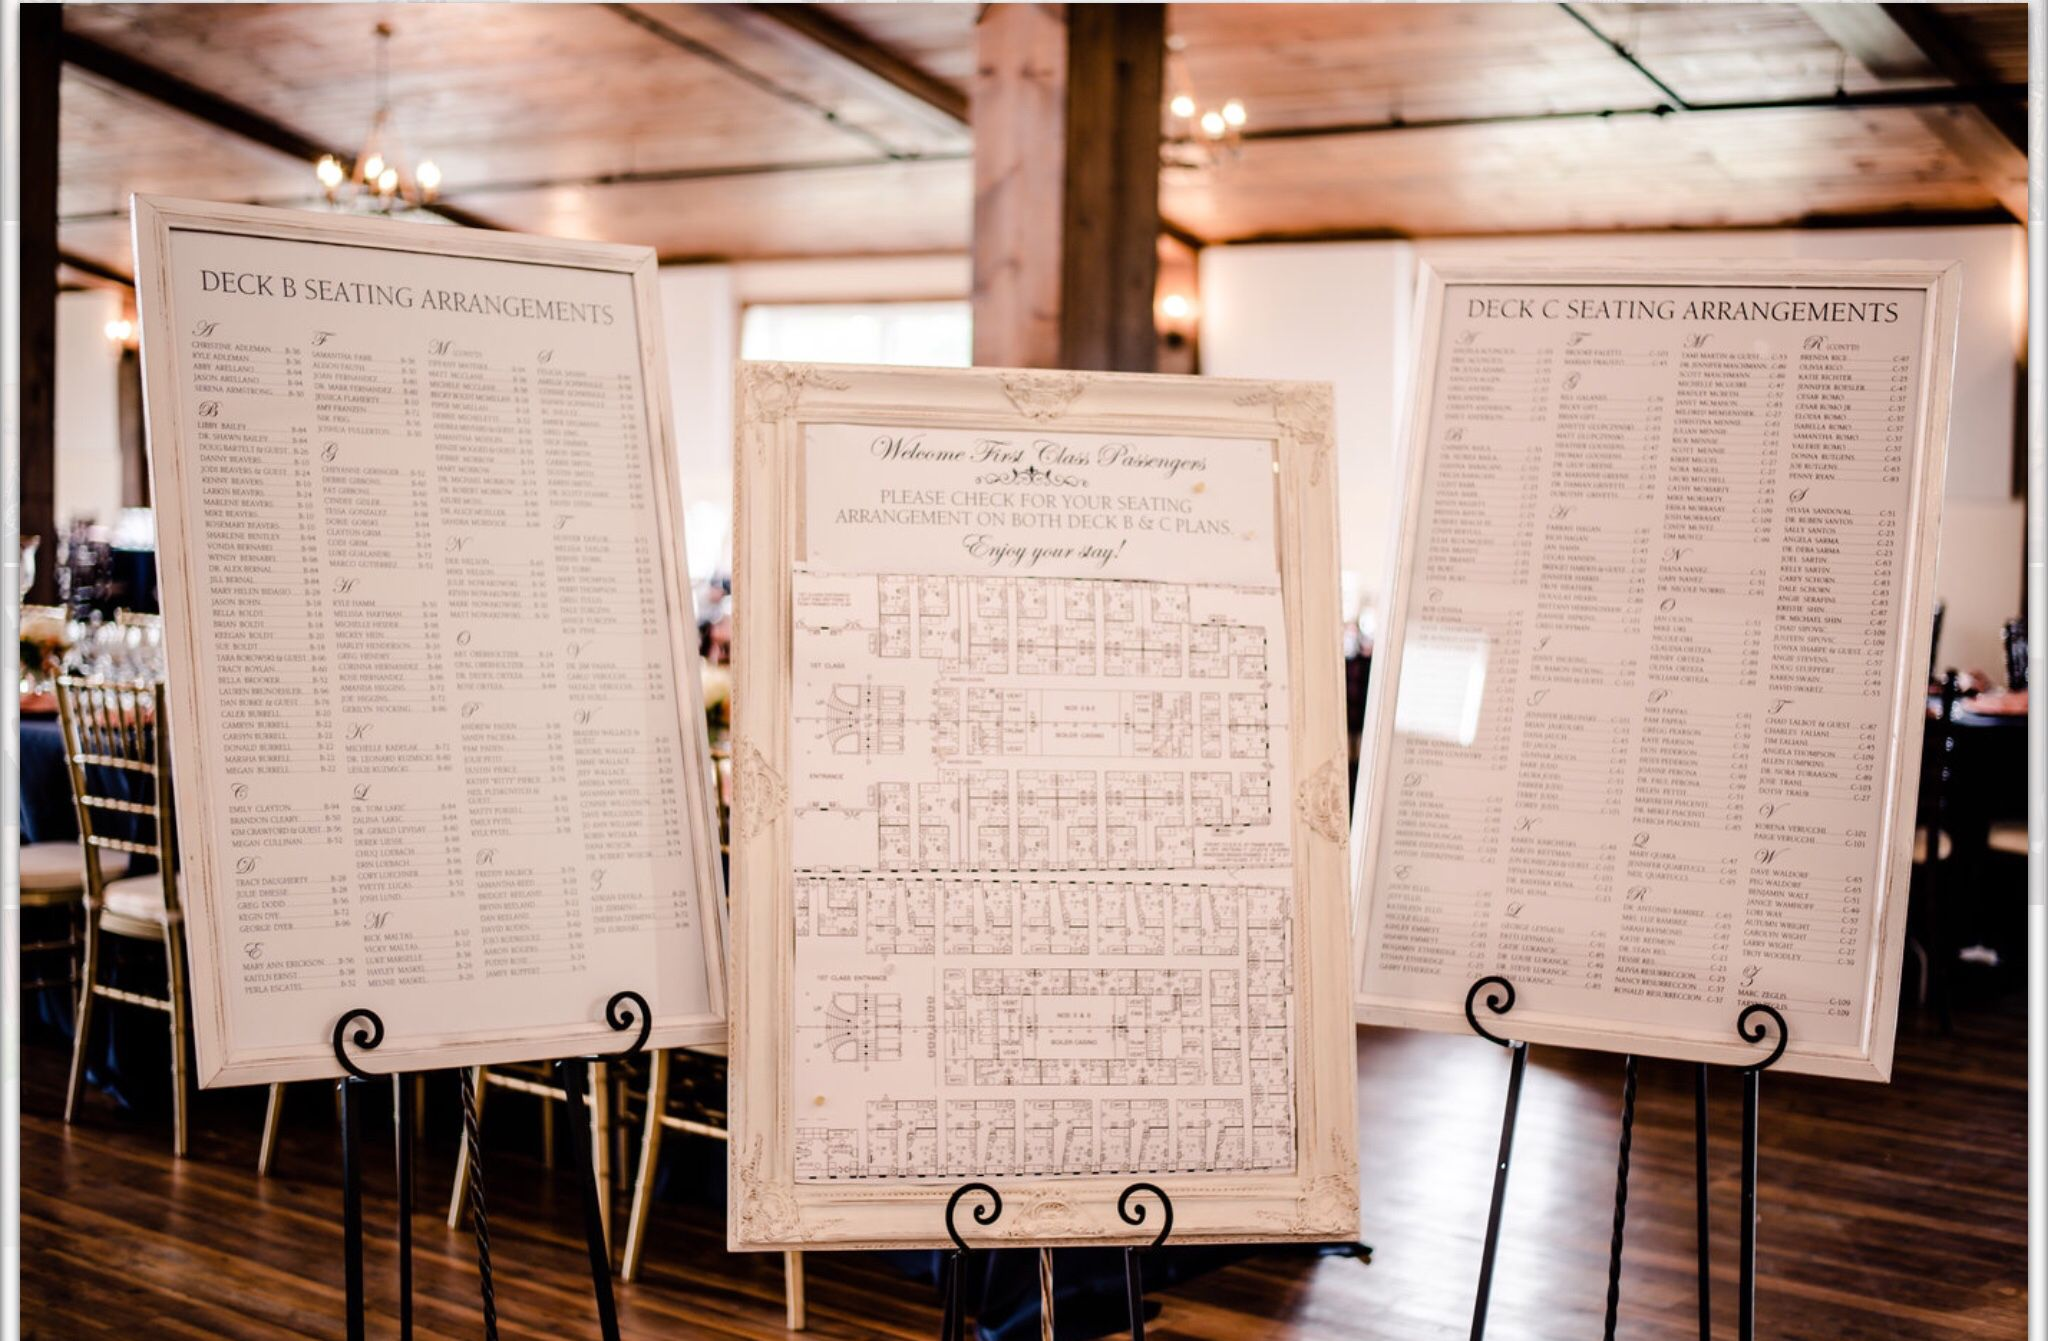 Seating Chart And Cabin Numbers Deck Seating Seating Arrangements Original Titanic